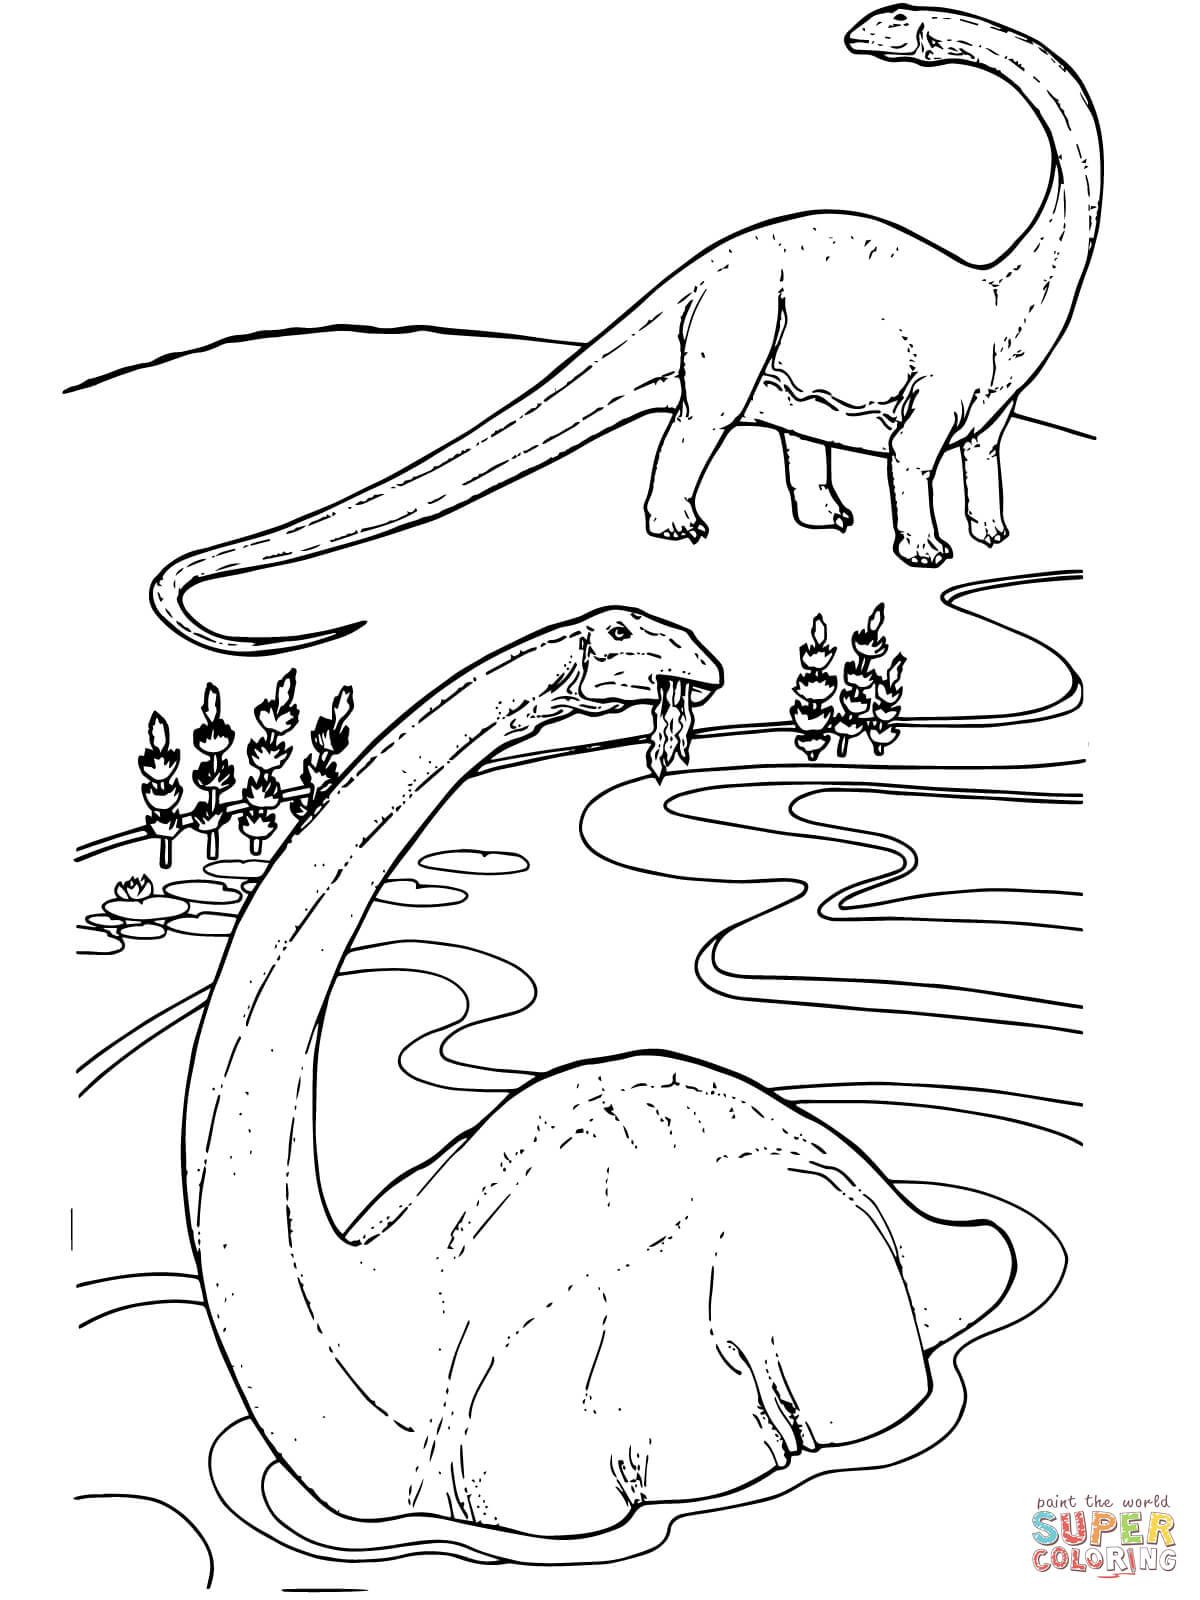 Apatosaurus Coloring Page From Apatosaurus Category Select From